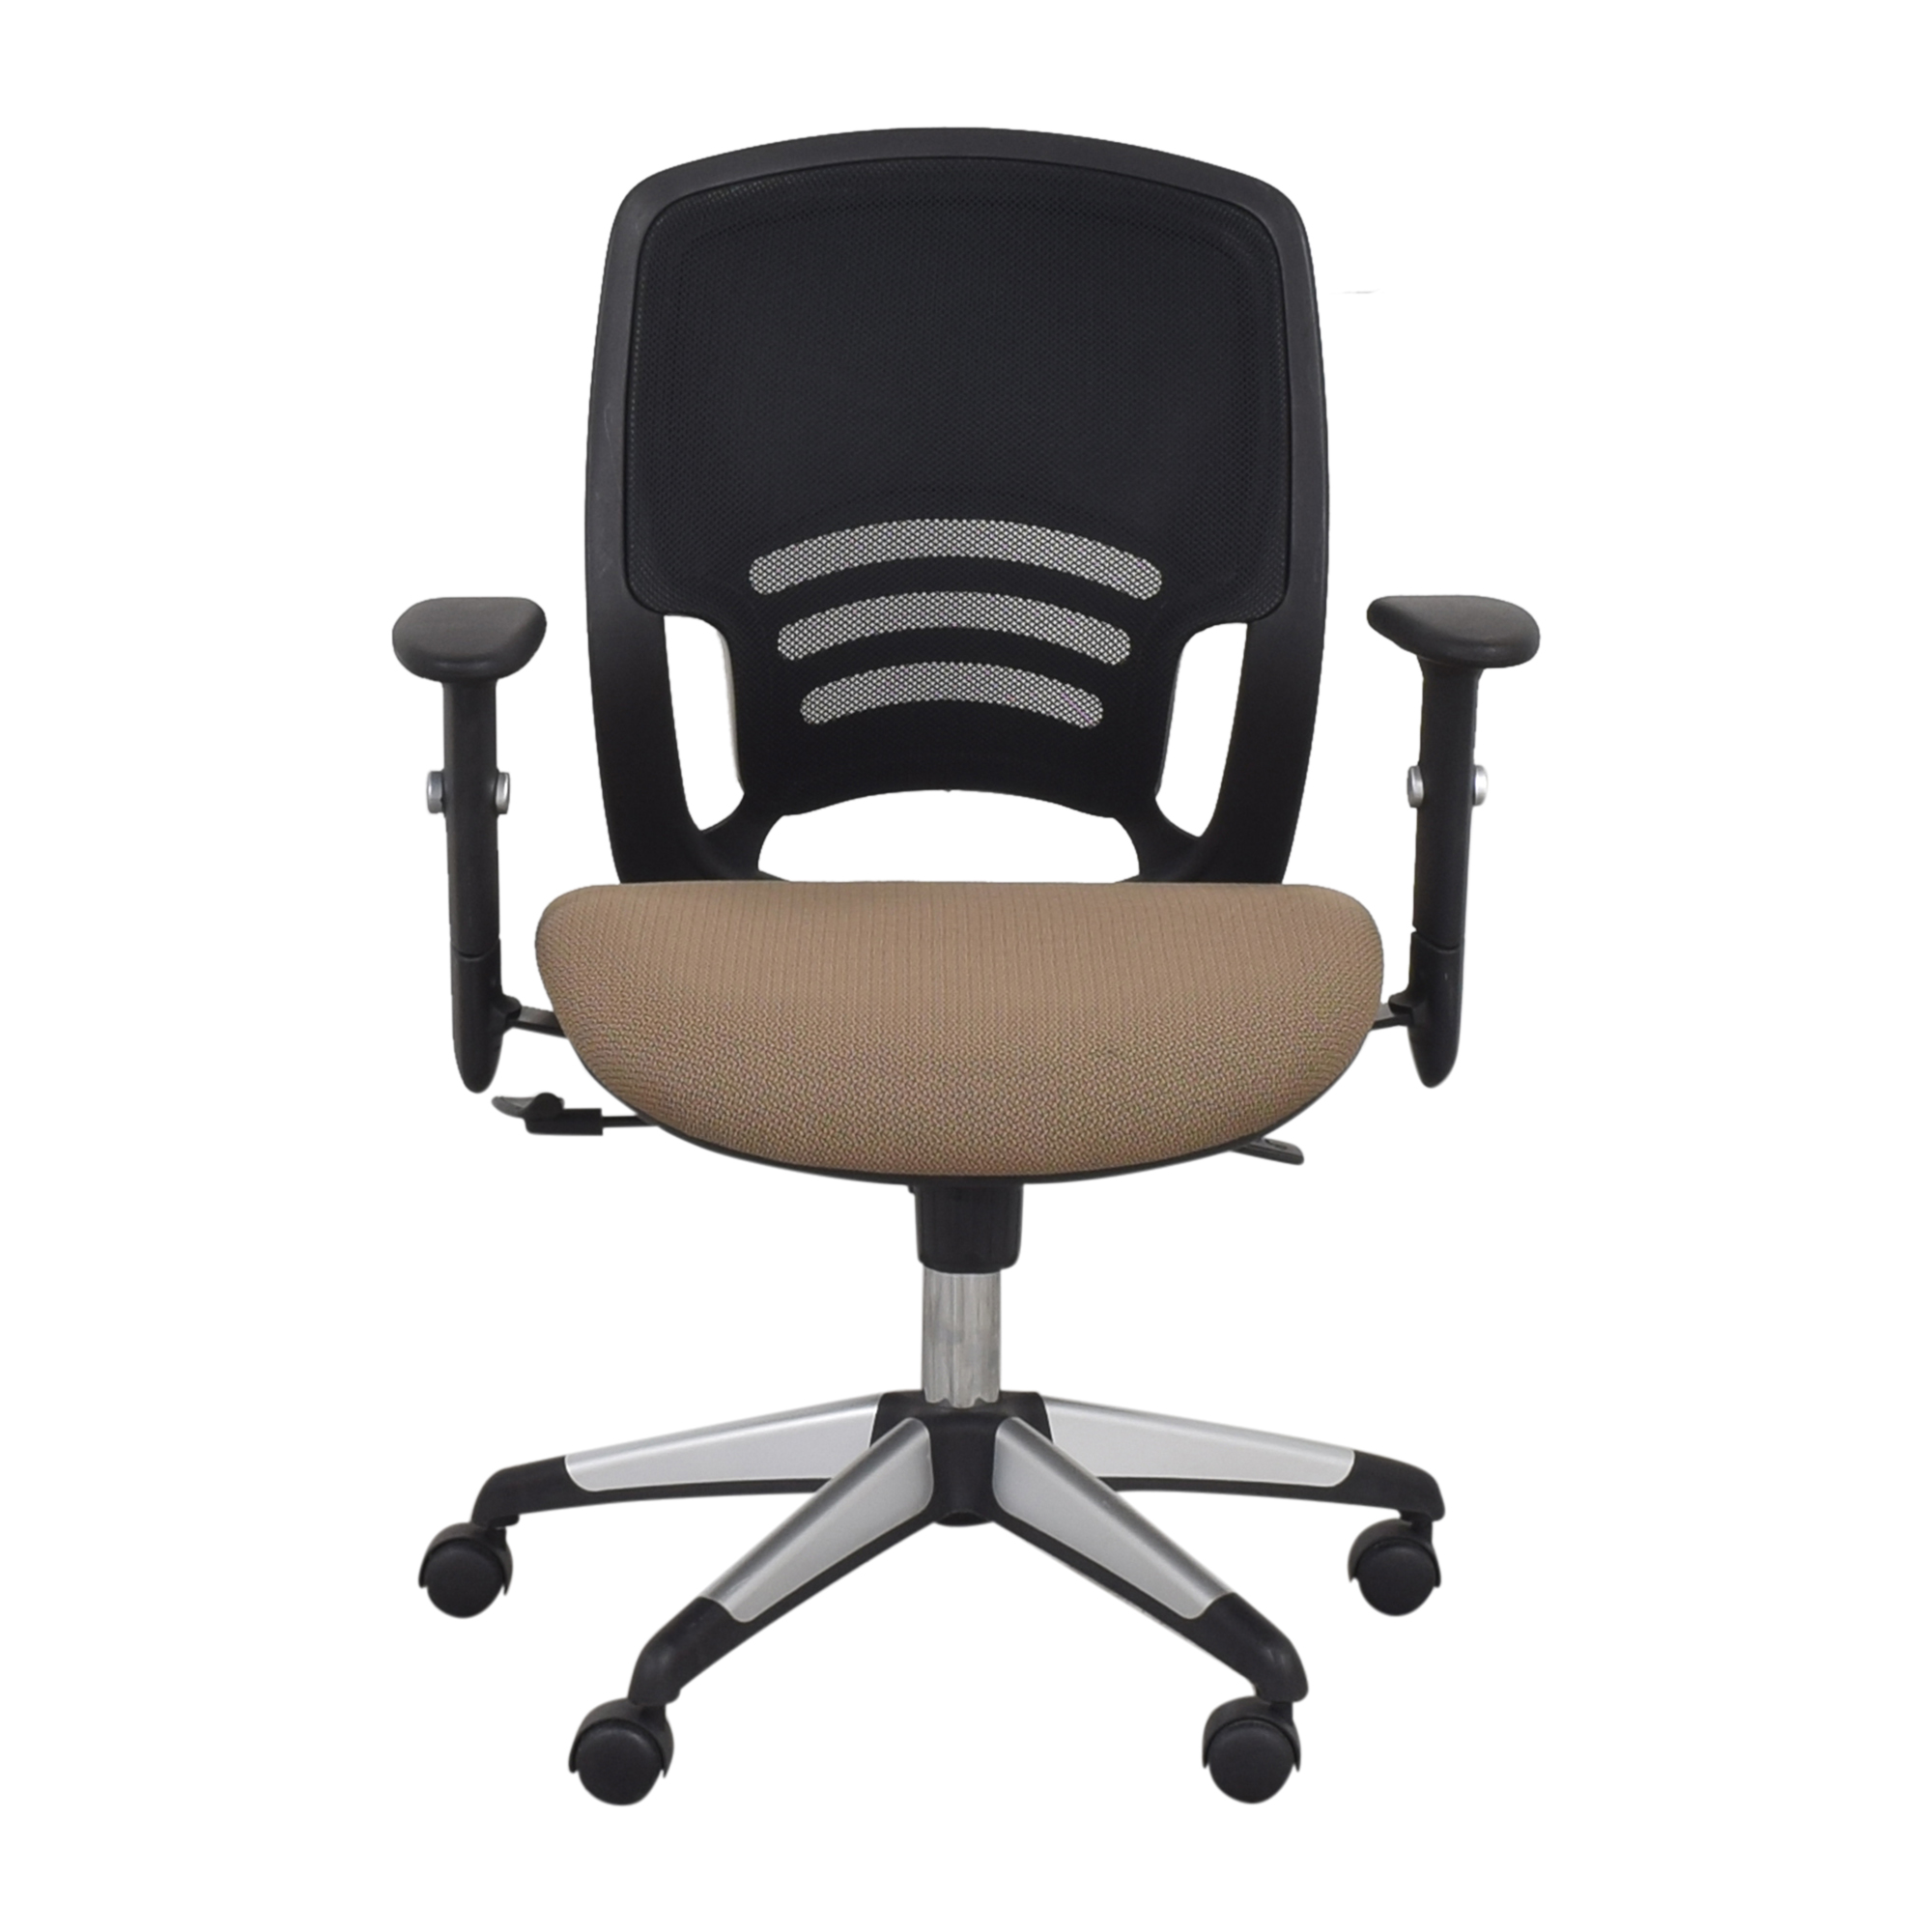 buy Offices to Go Low Mesh Back Swivel Chair Offices to Go Home Office Chairs